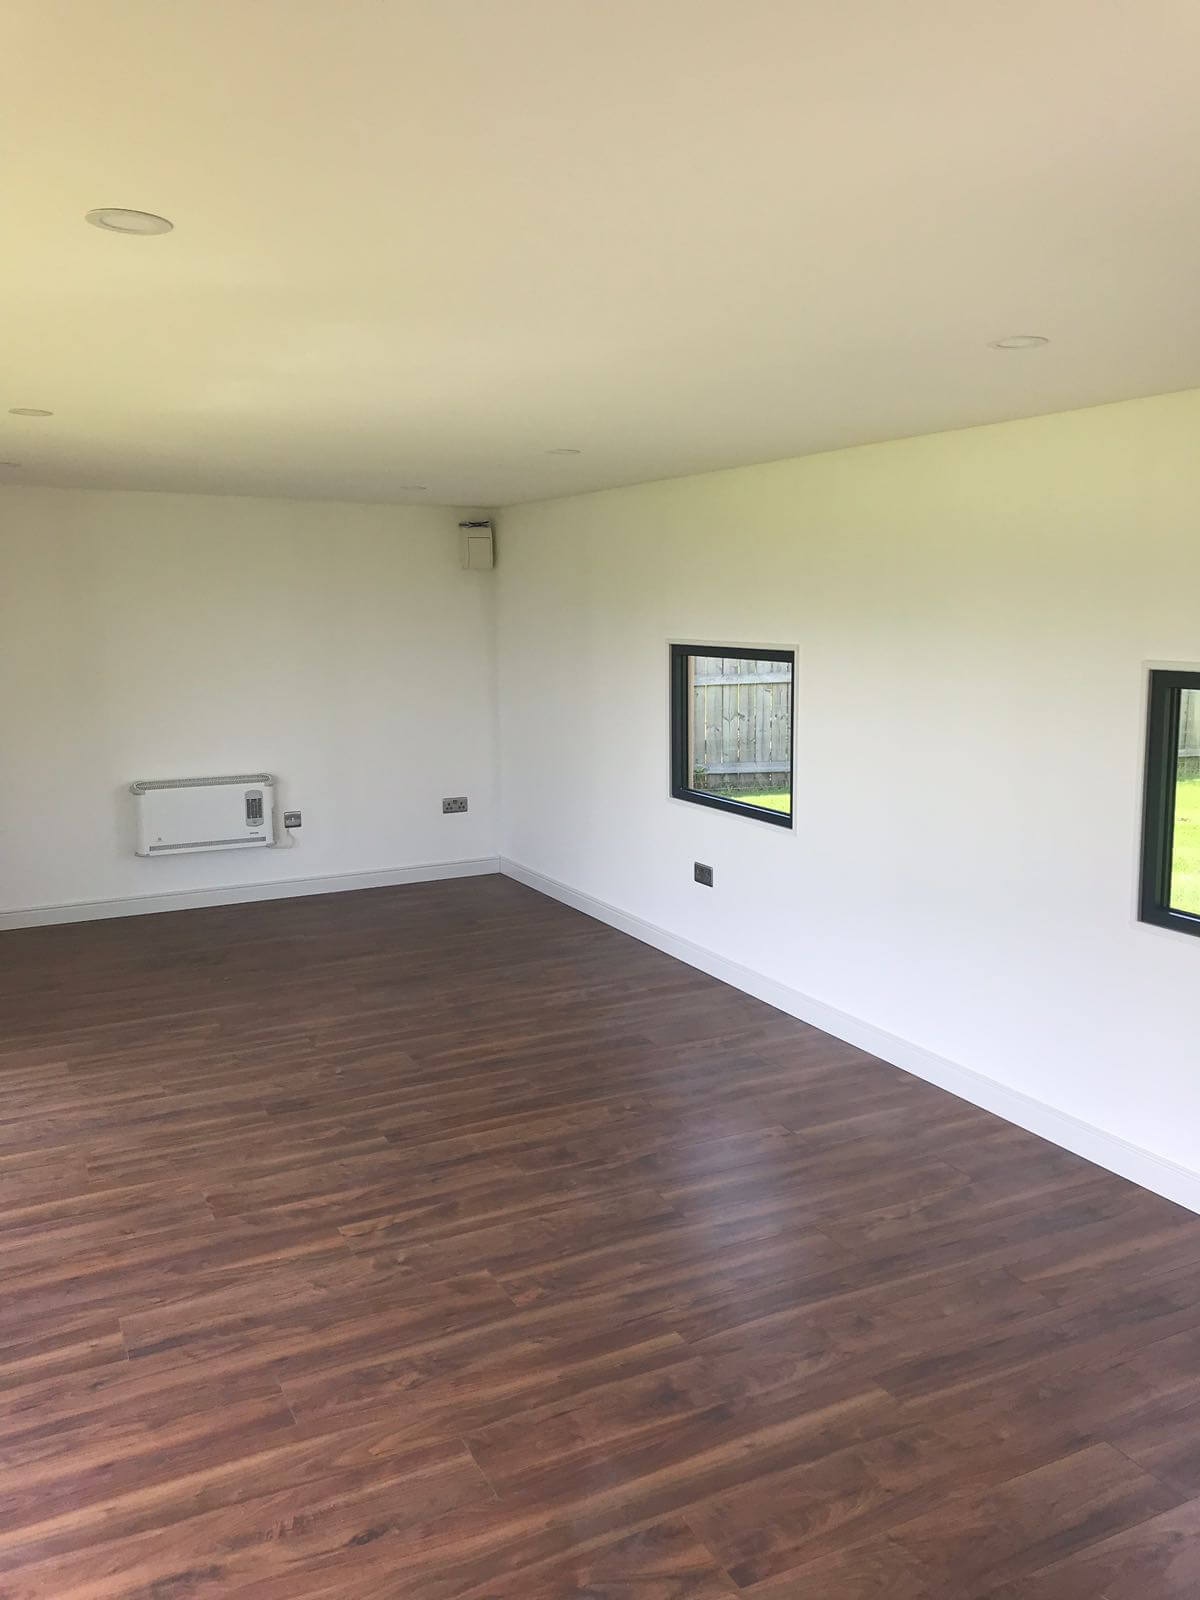 Plastered and painted finish interior